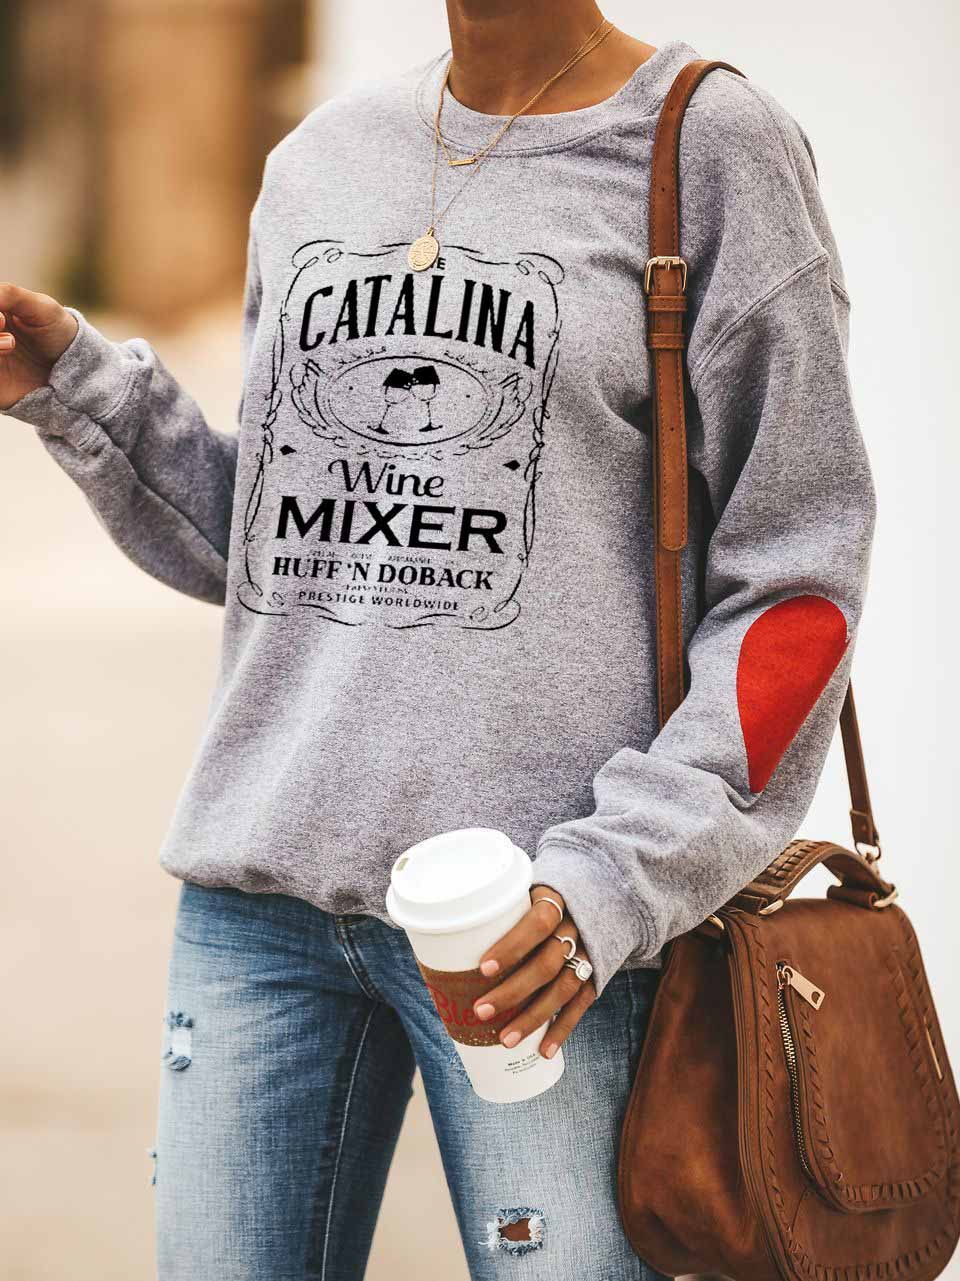 Ladies The Catalina Wine Mixer Special Guest Appearance By Huff'N Doback Presented By Prestige Worldwide Letter Printed Peach Heart Sweatshirt